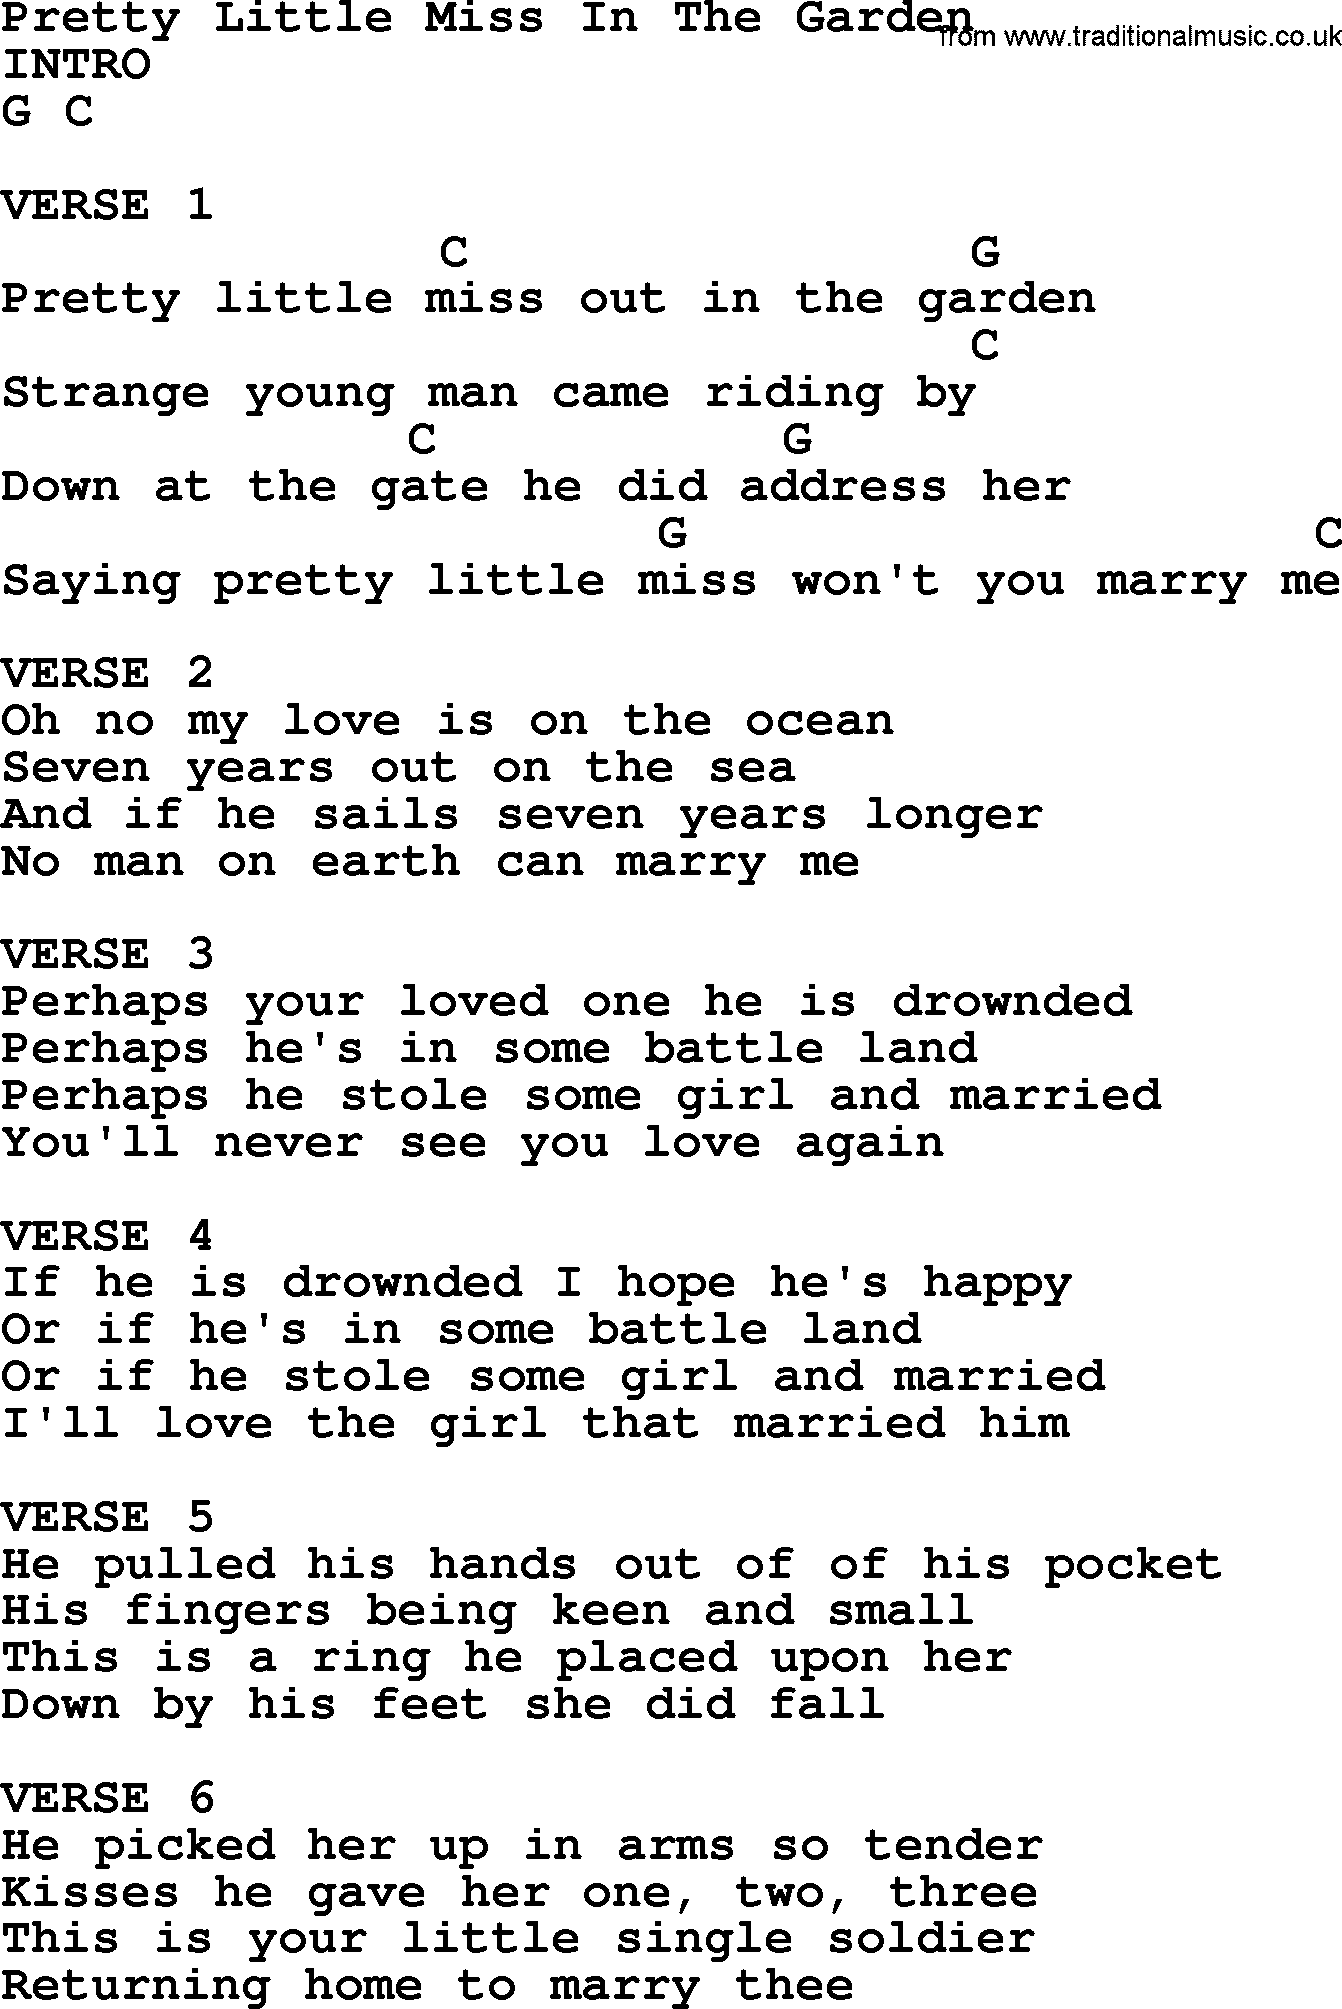 Pretty Little Miss In The Garden Bluegrass Lyrics With Chords